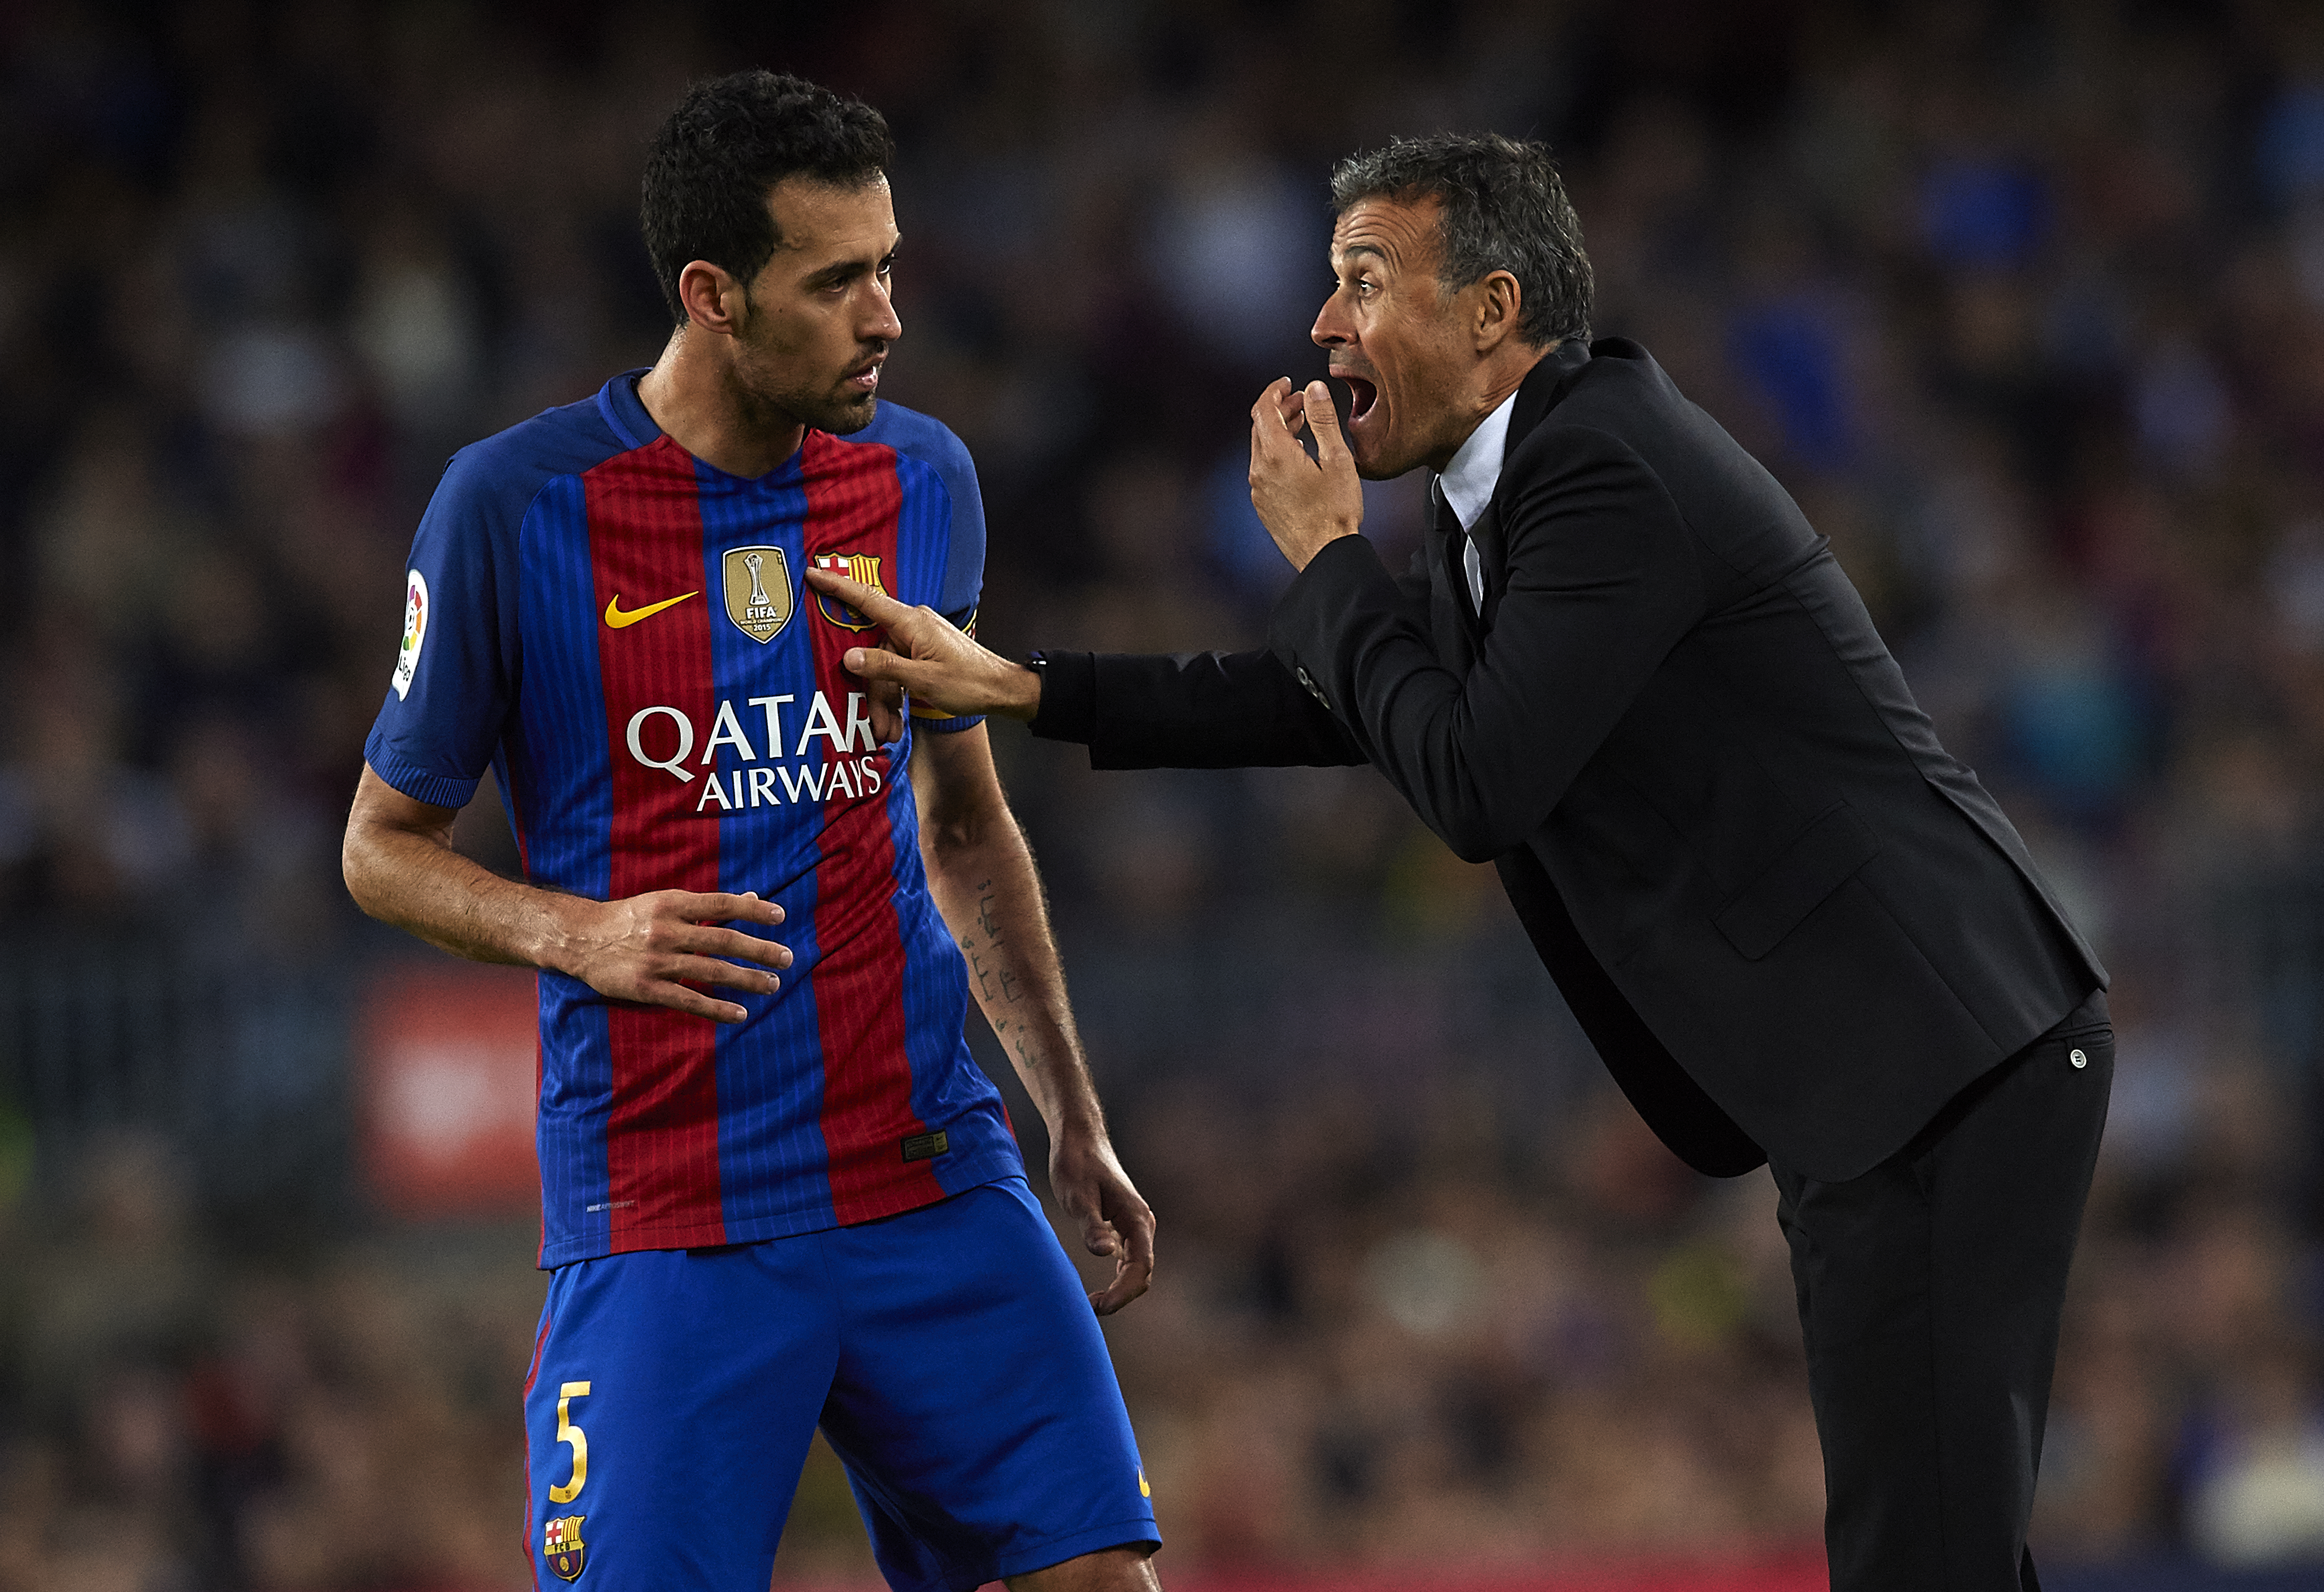 BARCELONA, SPAIN - NOVEMBER 19: Luis Enrique, Manager of FC Barcelona gives instructions to his player Sergio Busquets during the La Liga match between FC Barcelona and Malaga CF at Camp Nou stadium on November 19, 2016 in Barcelona, Spain. (Photo by Manuel Queimadelos Alonso/Getty Images)